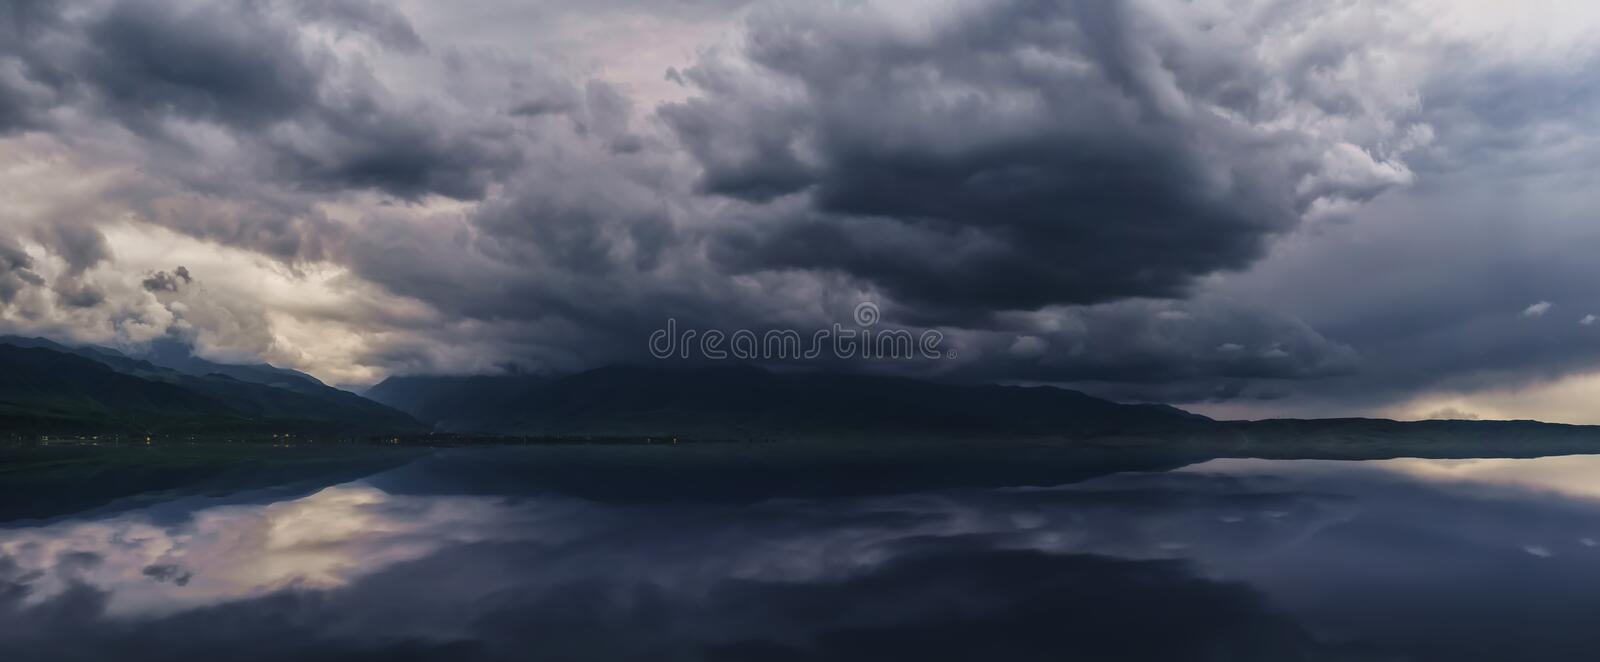 Amazing cloud over the mountains. dramatic storm over the lake and mountains. Hiking Adventure stock photography